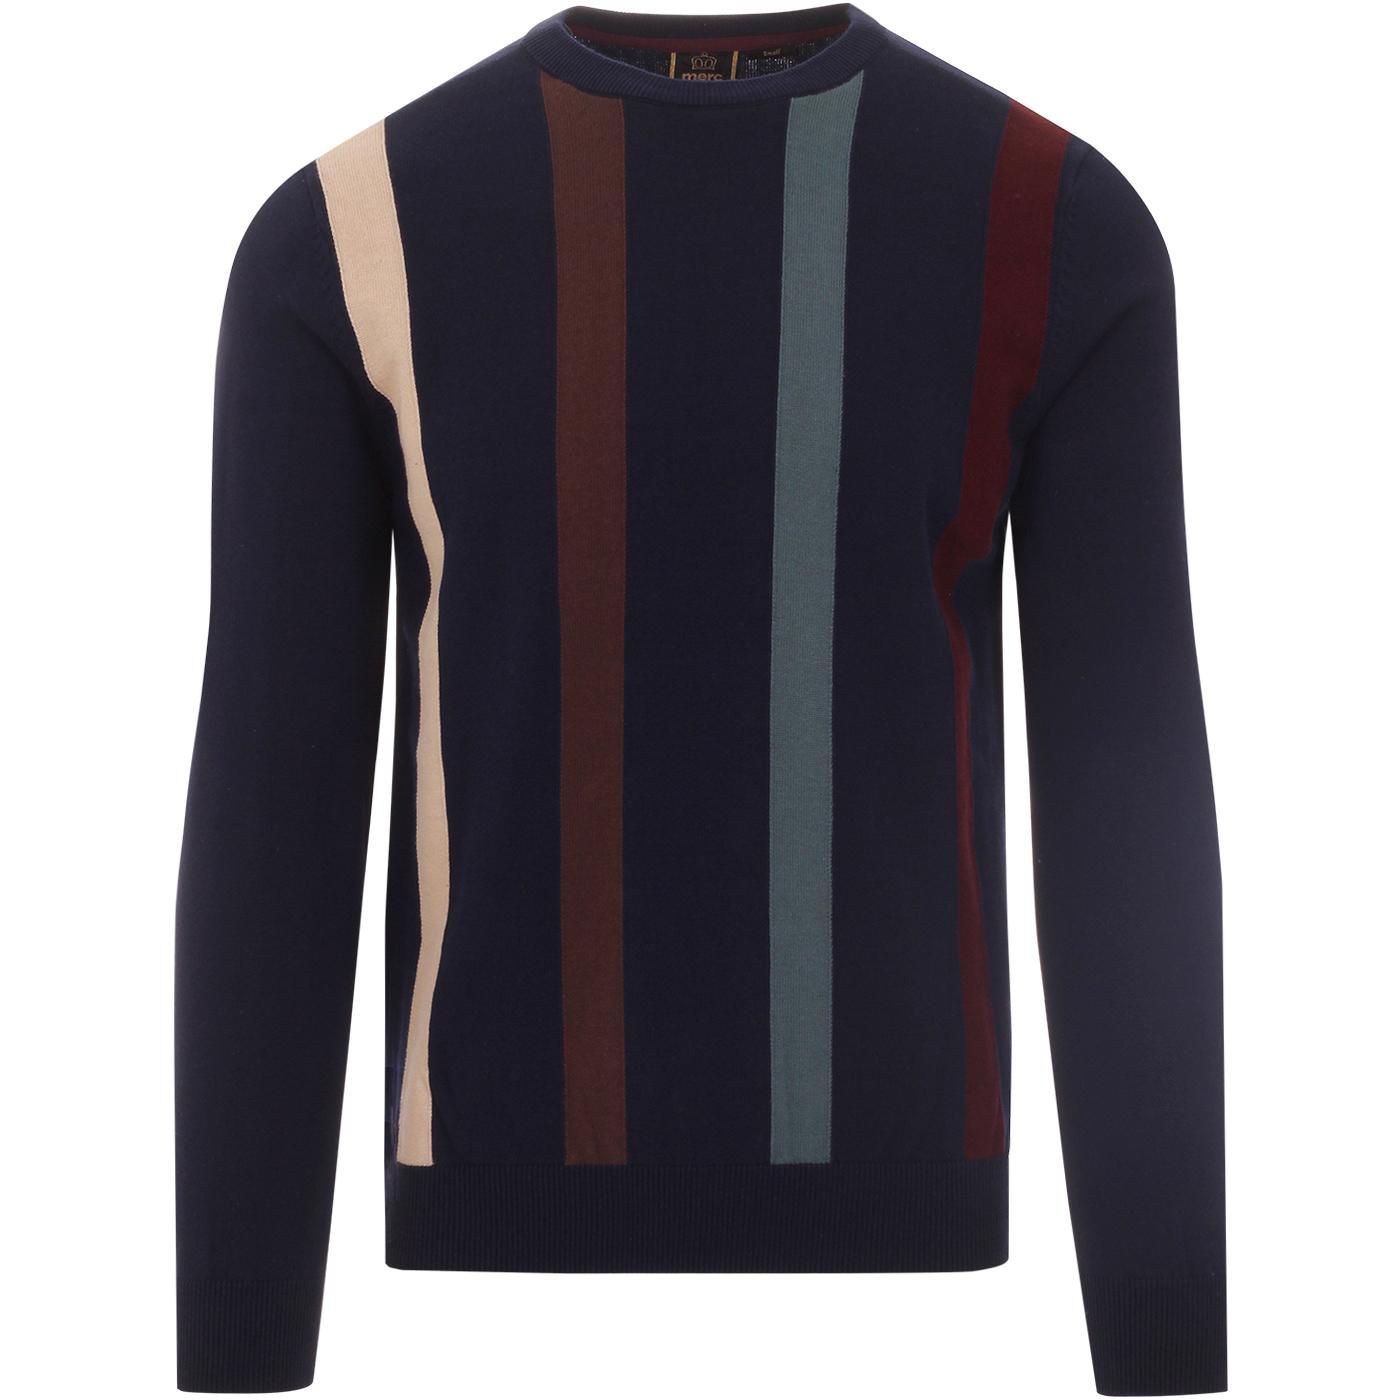 Darren MERC 1960s Mod Stripe Panel Jumper (Navy)